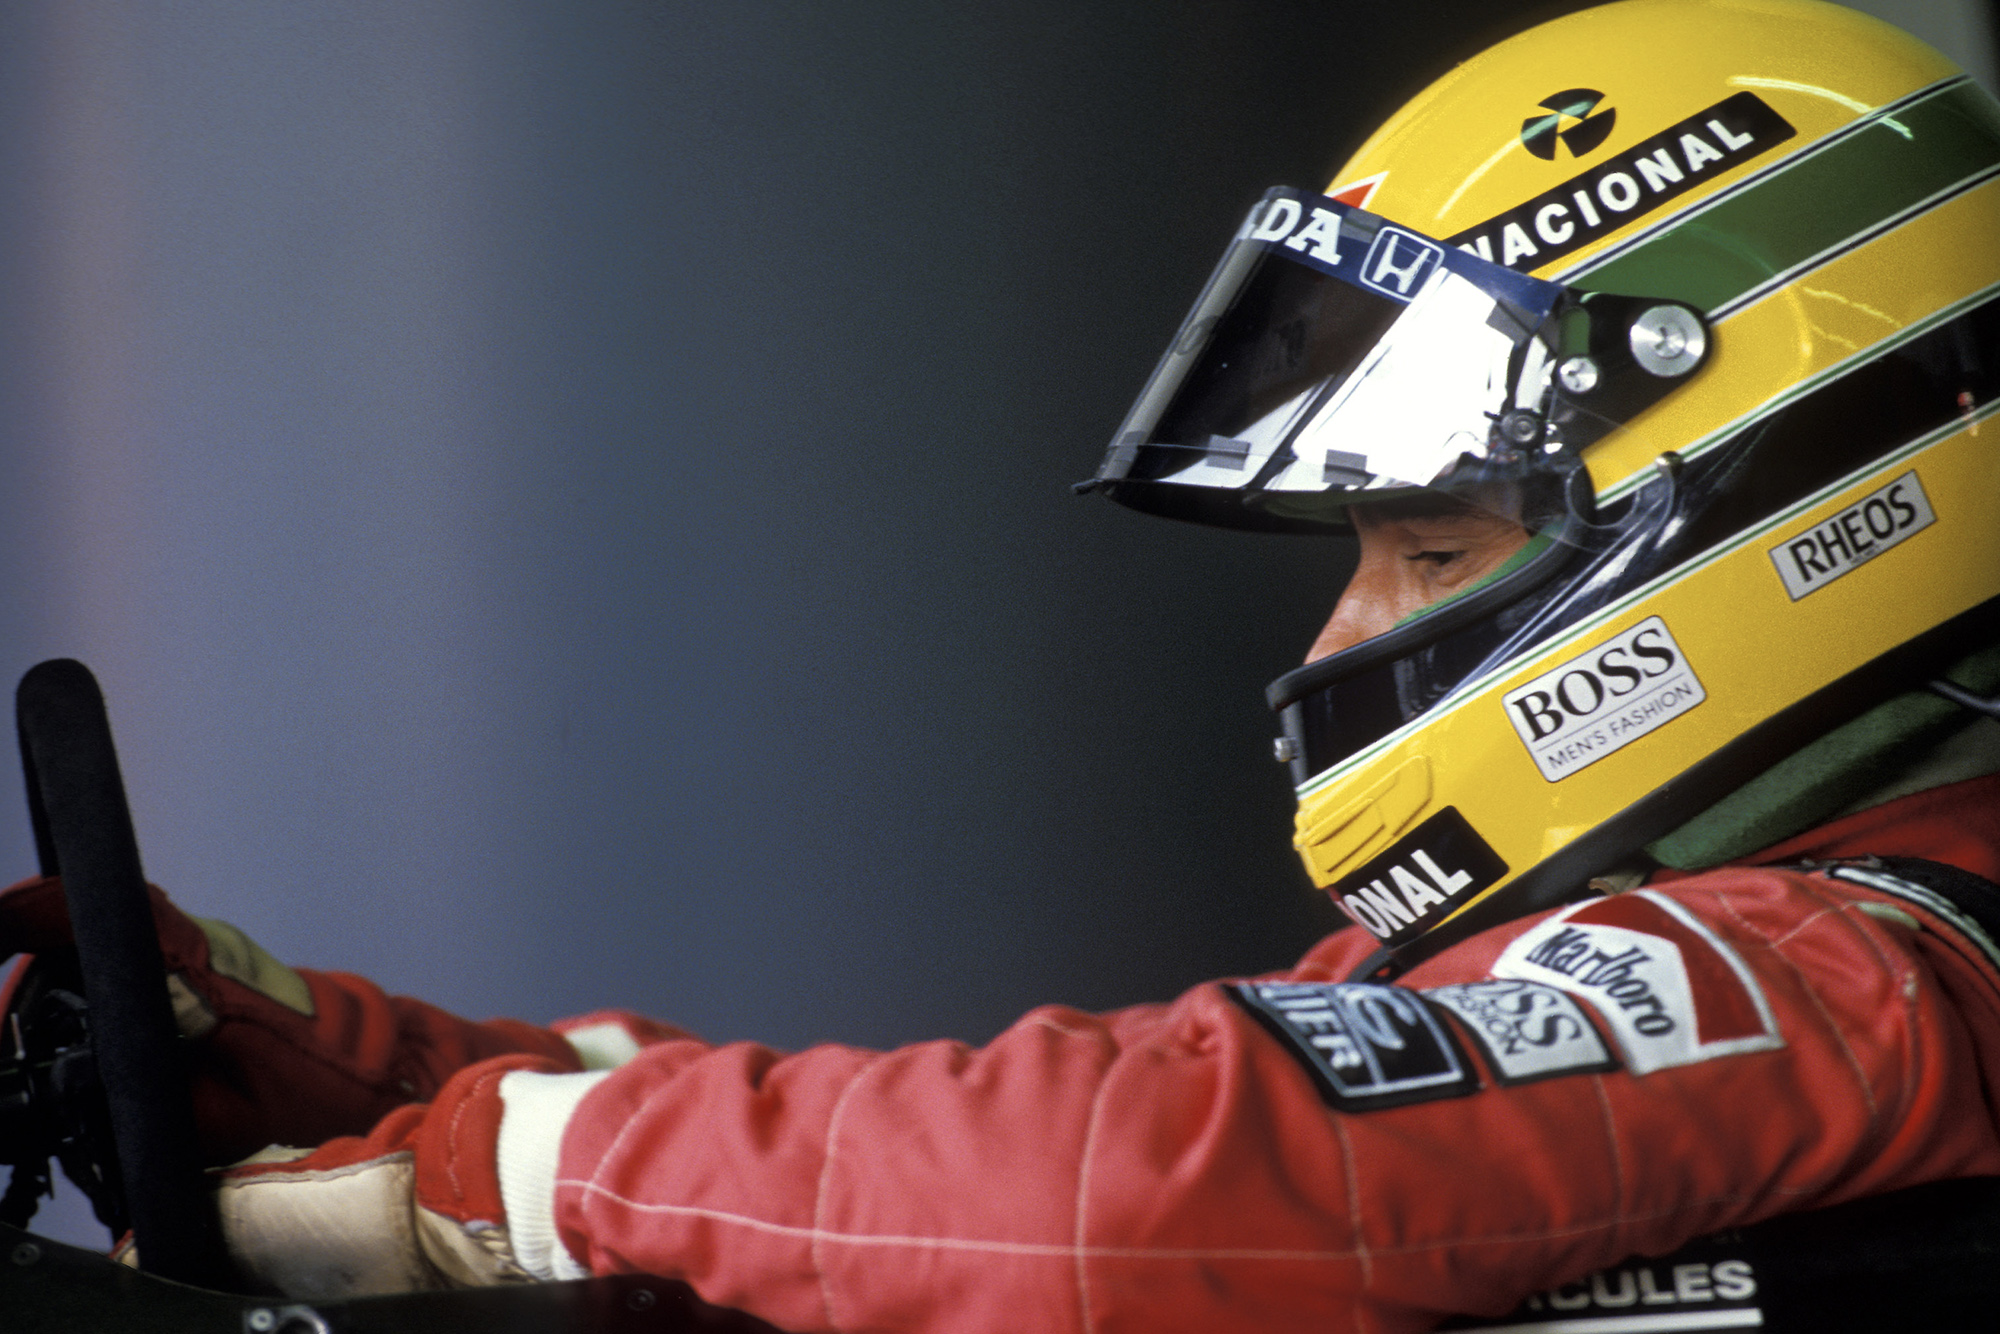 Side view of Ayrton Senna in his McLaren cockpit during the 1990 F1 season